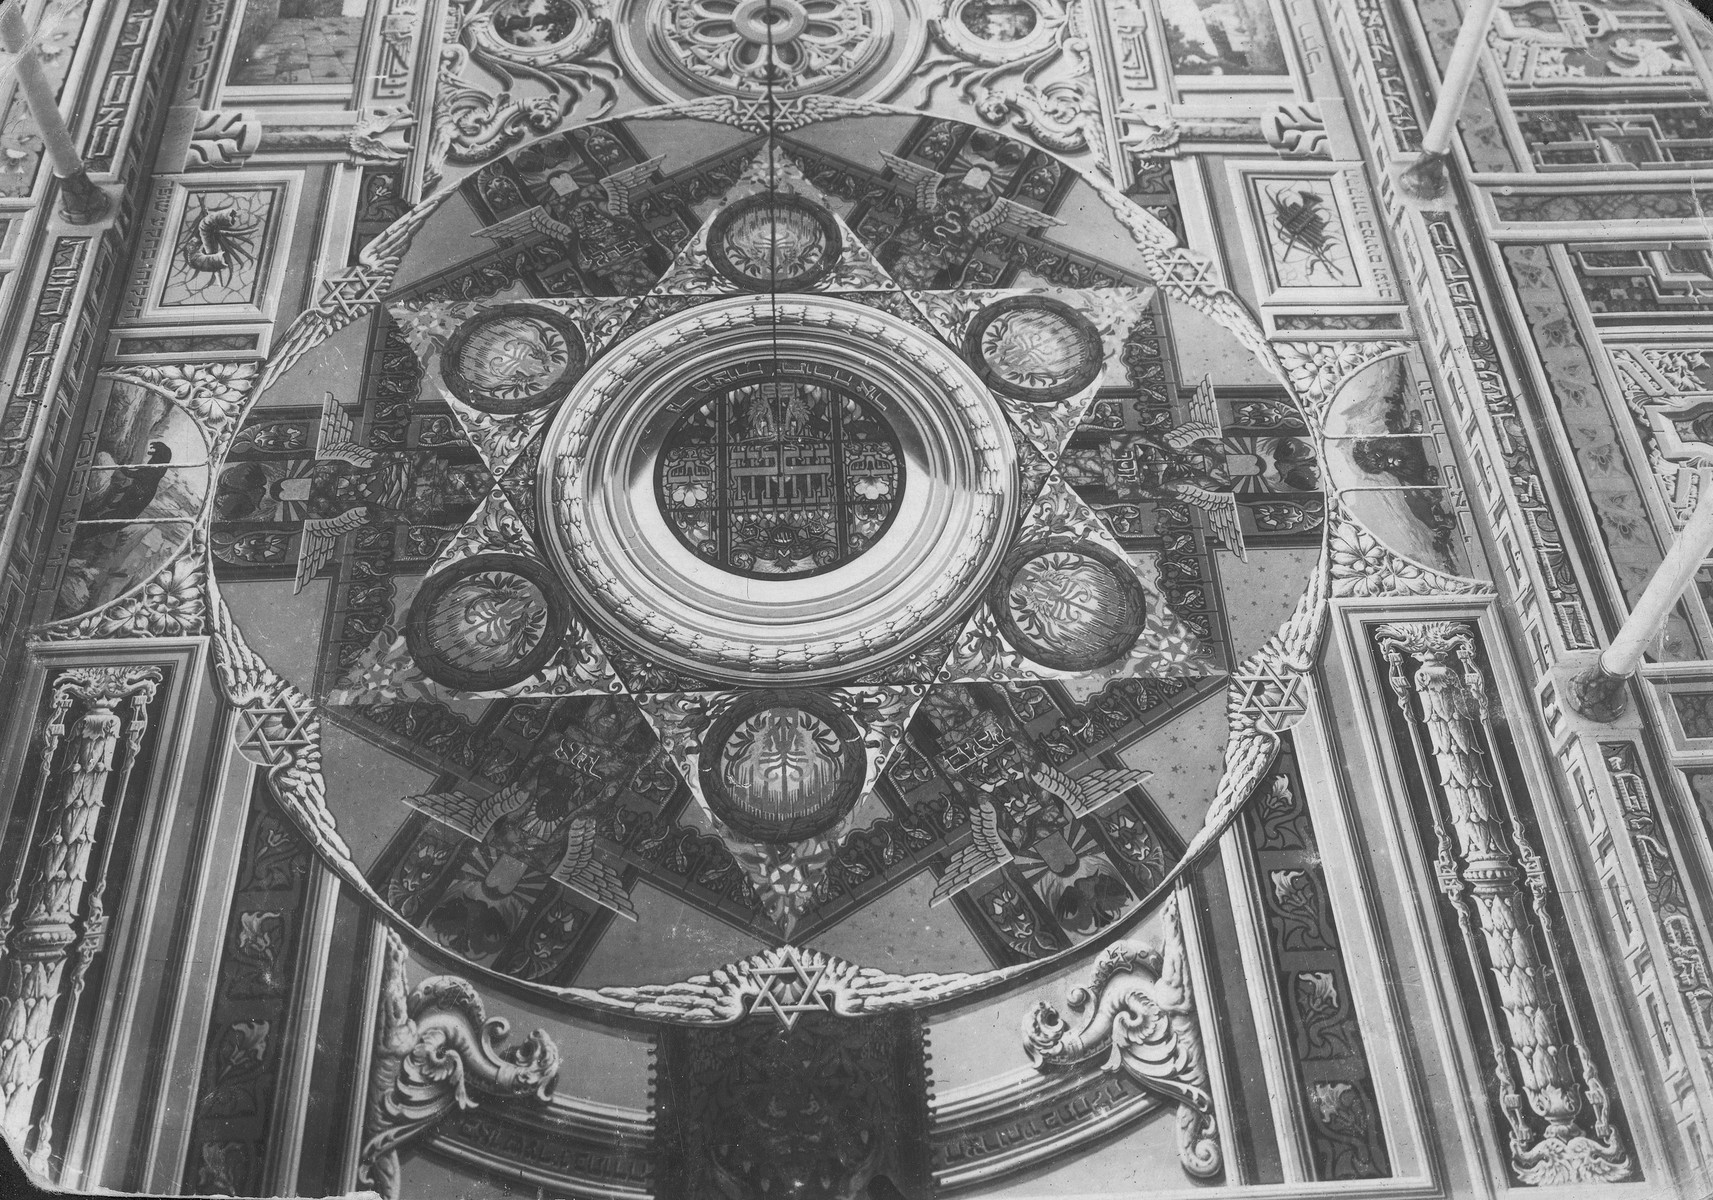 Interior view of a synagogue ceiling mural painted by Perec Willenberg in Czestochowa.